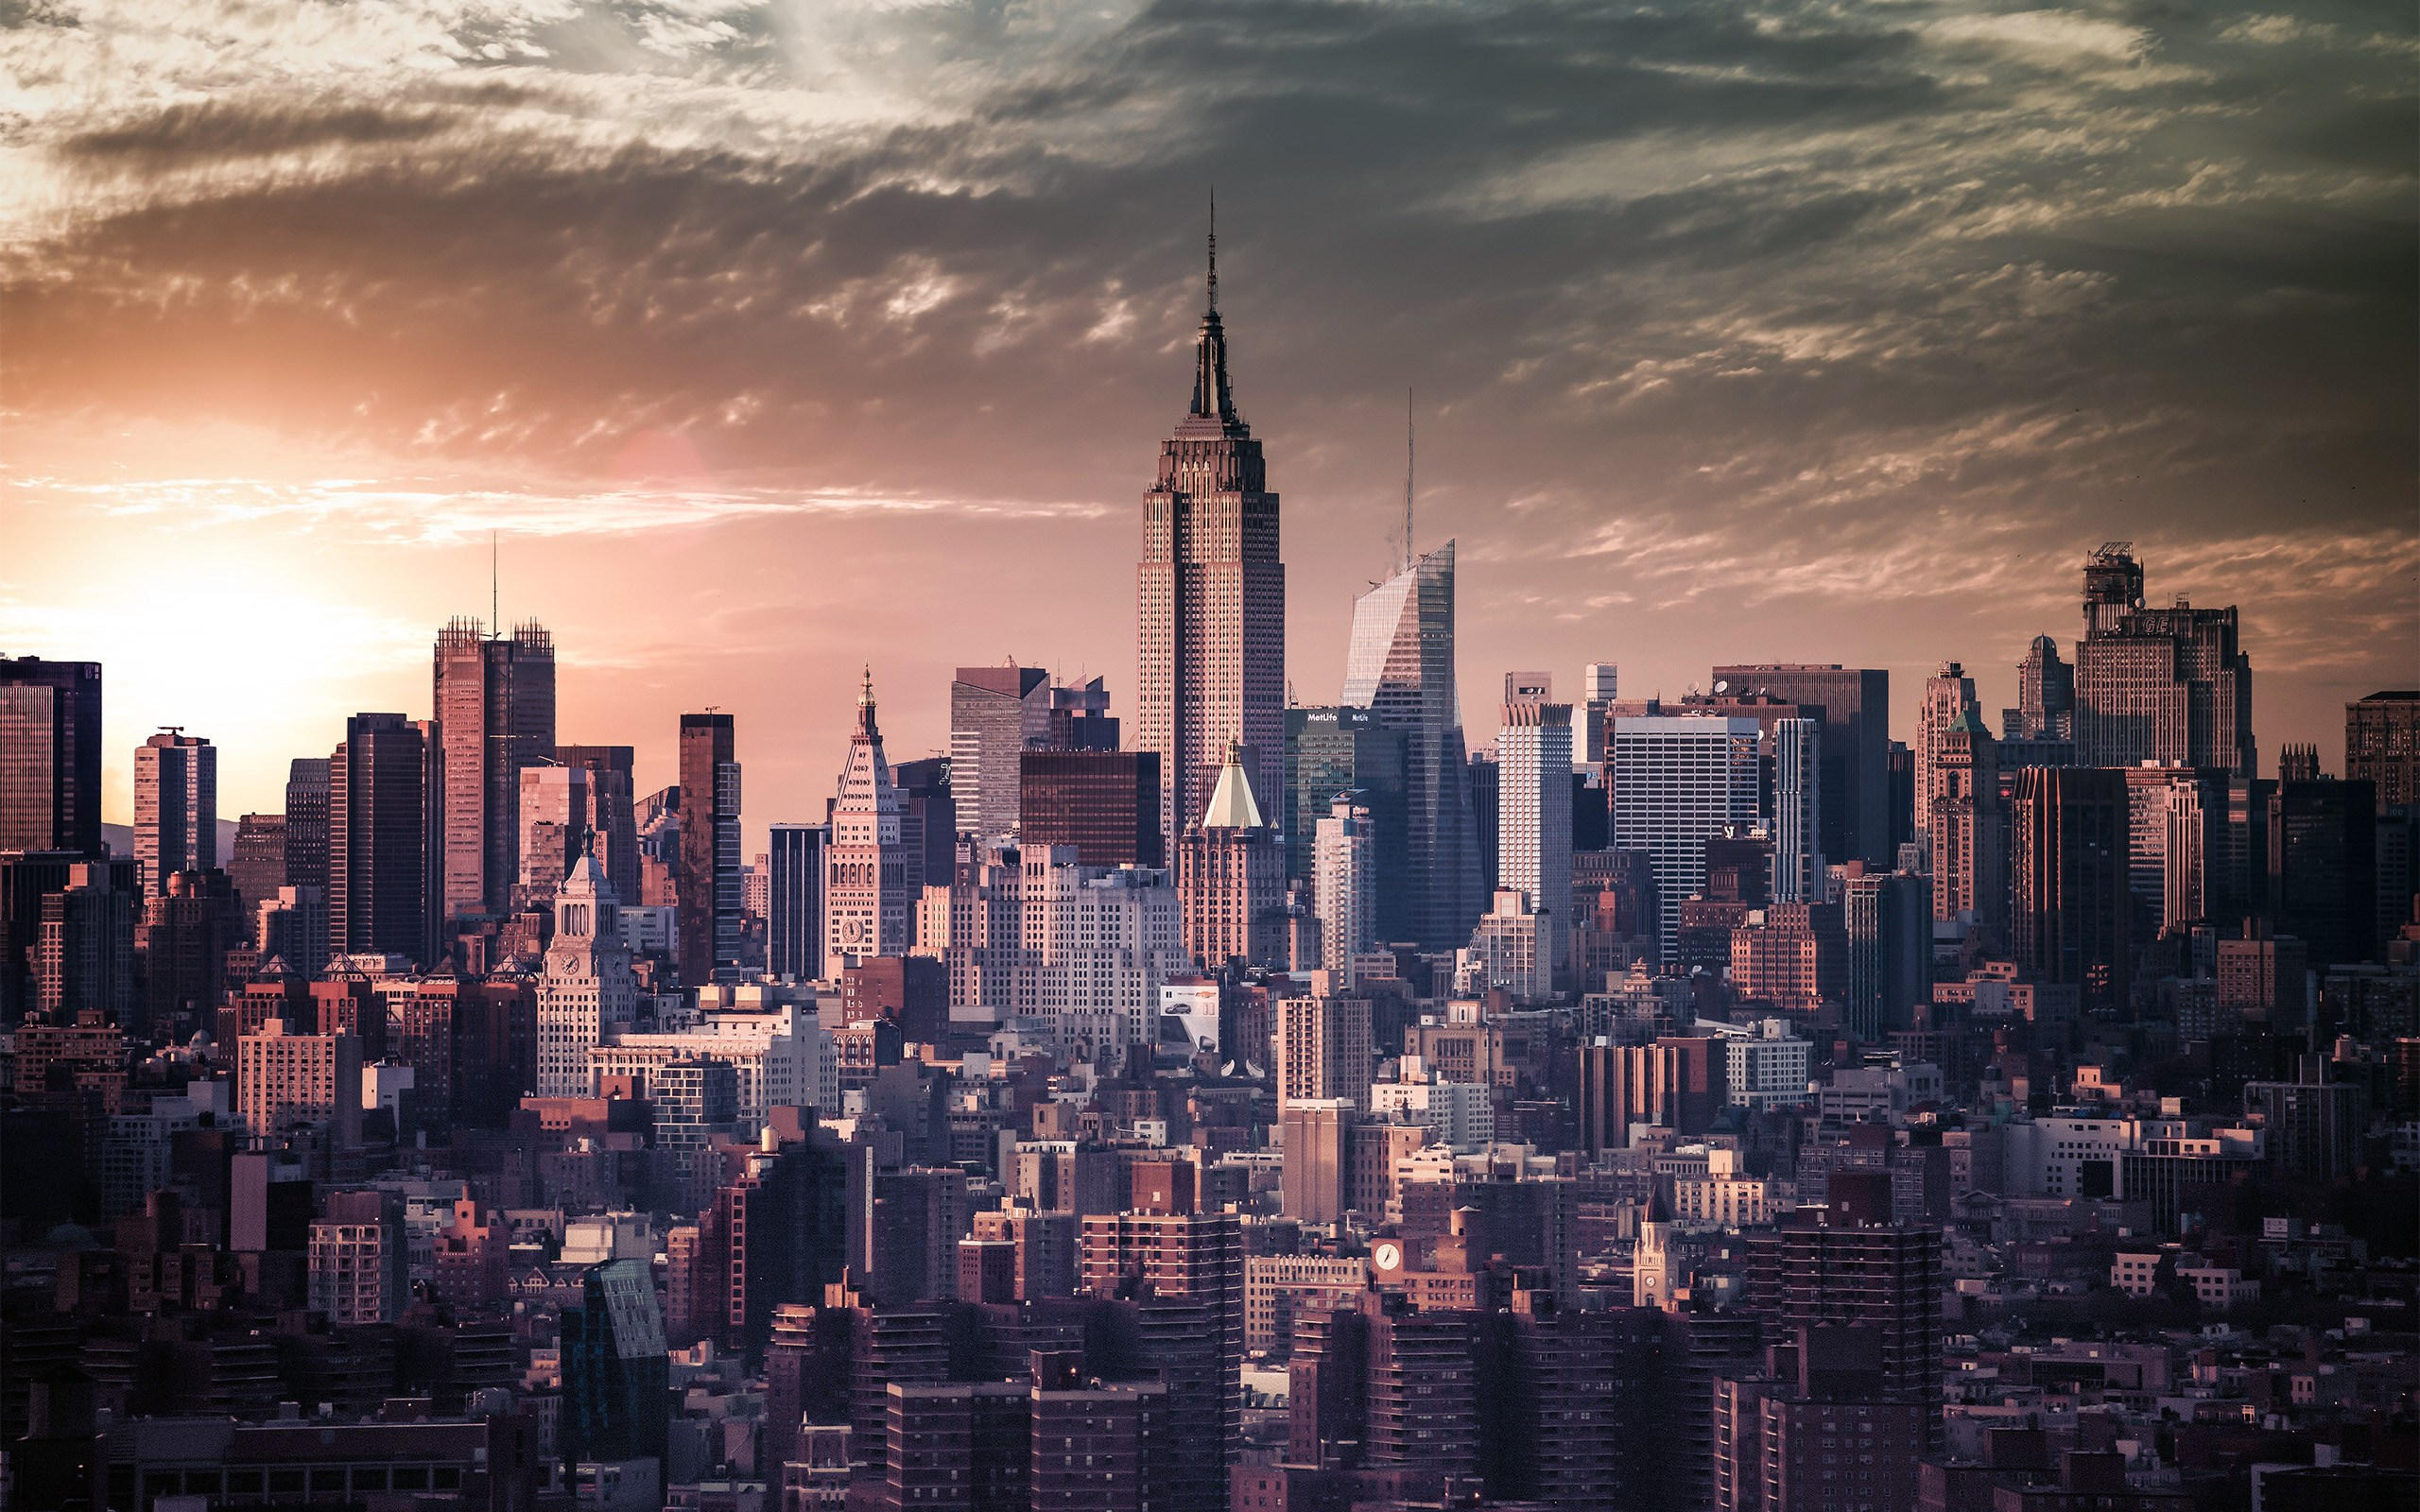 Amazing Wallpaper High Quality City -   Image_885969.com/download/high-quality-free-dazzling-usa-new-york-freedom-tower-wallpaper-download/